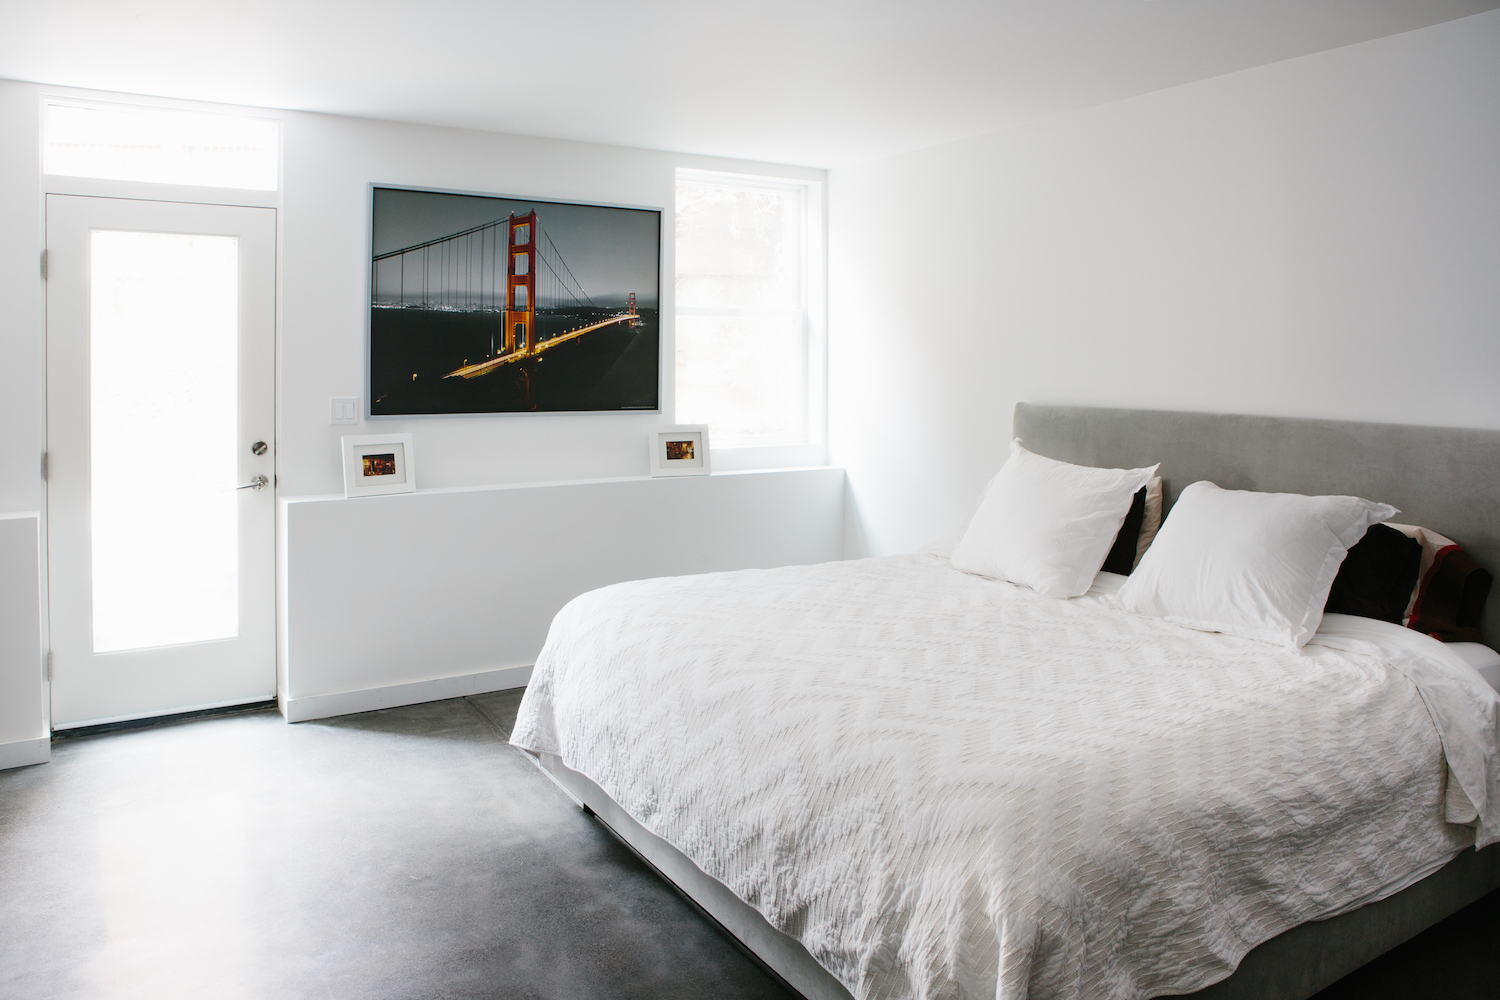 bedroom with cement floors and white walls and decorative ledge and grey fabric bed grame.jpg